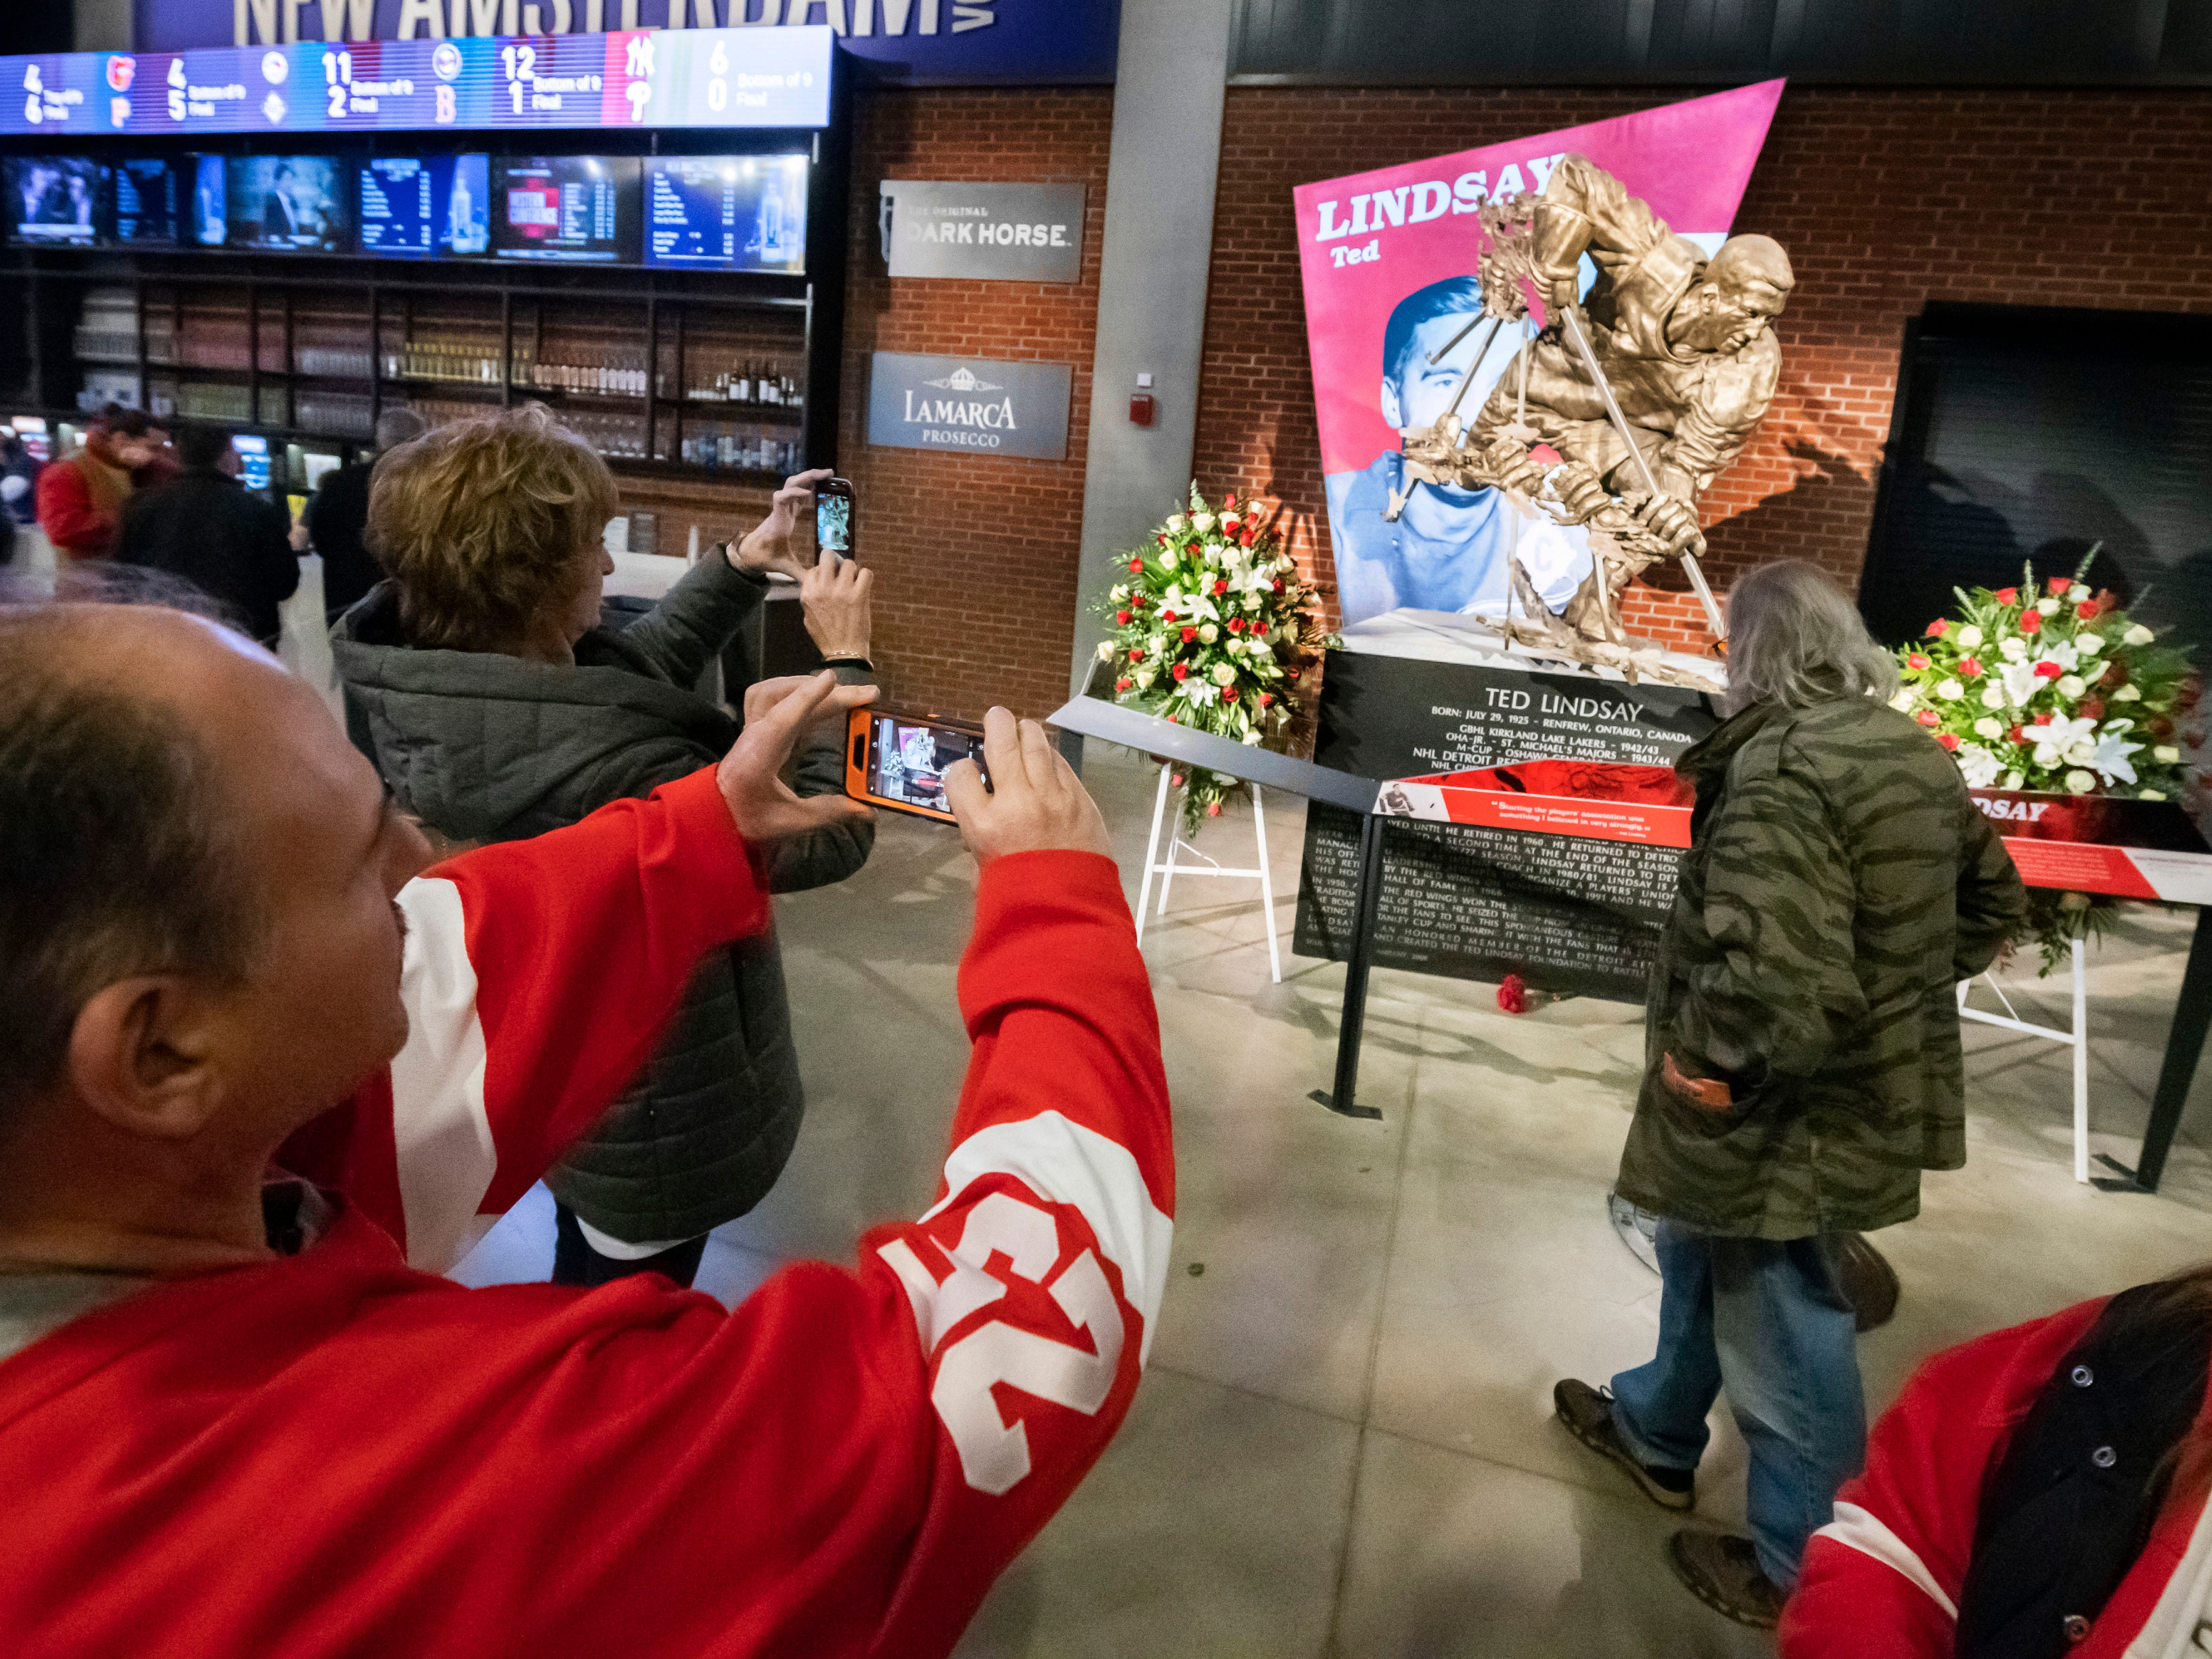 Fans take pictures of a statue of Ted Lindsay before the game.